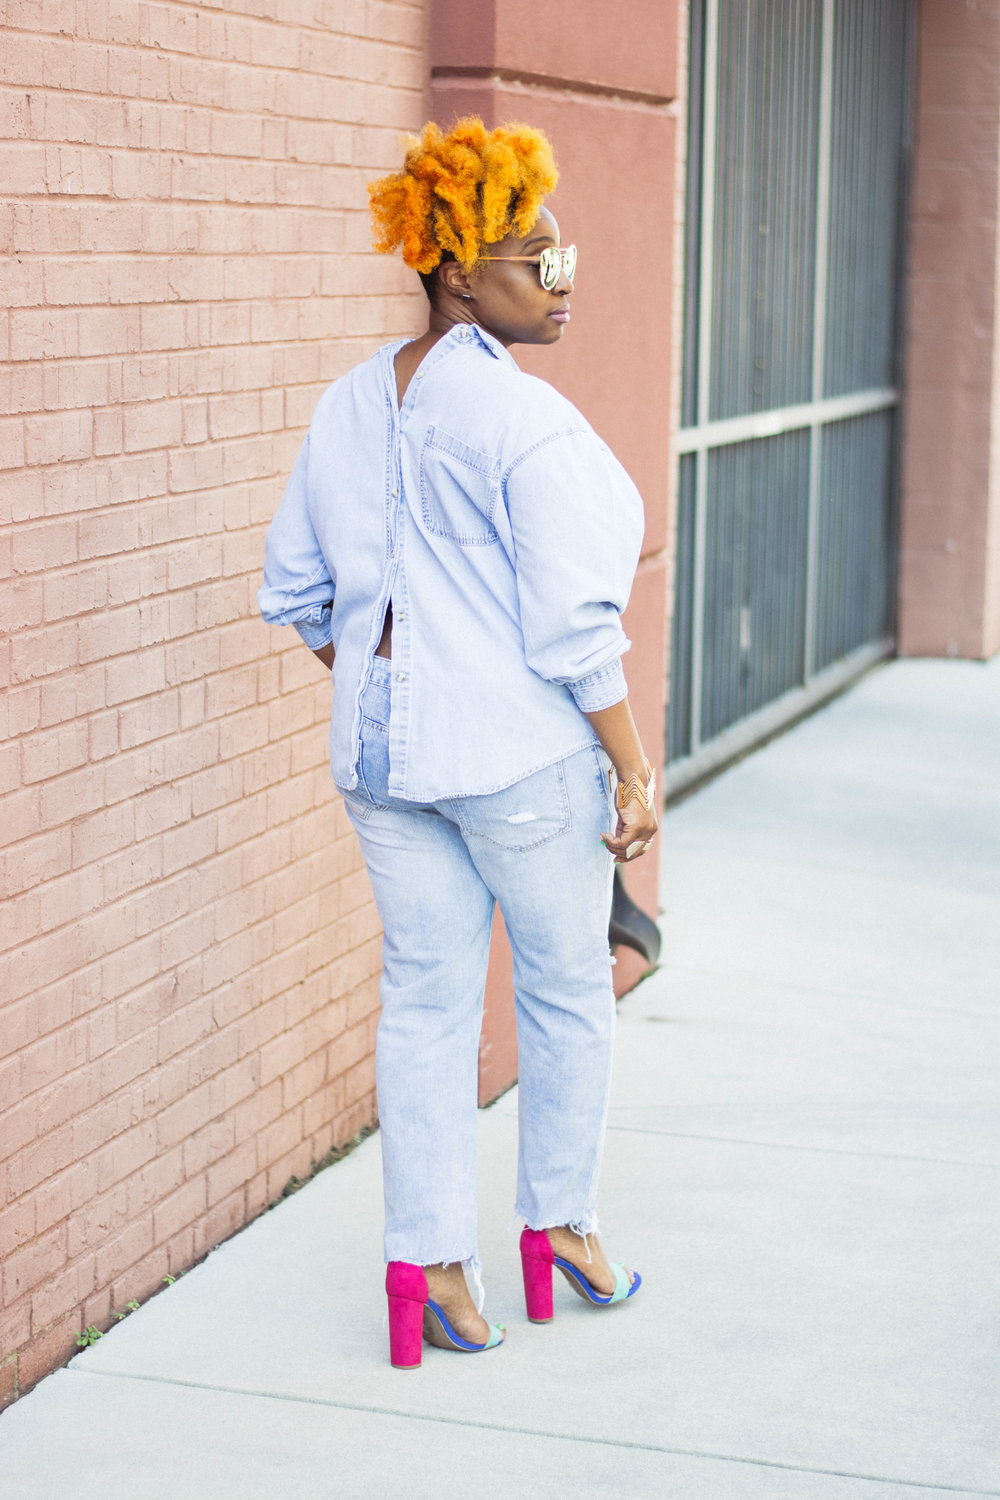 Melodie Stewart, The Style Klazit, Denim on denim, wearing shirt backwards, distressed jeans, Atlanta style blogger